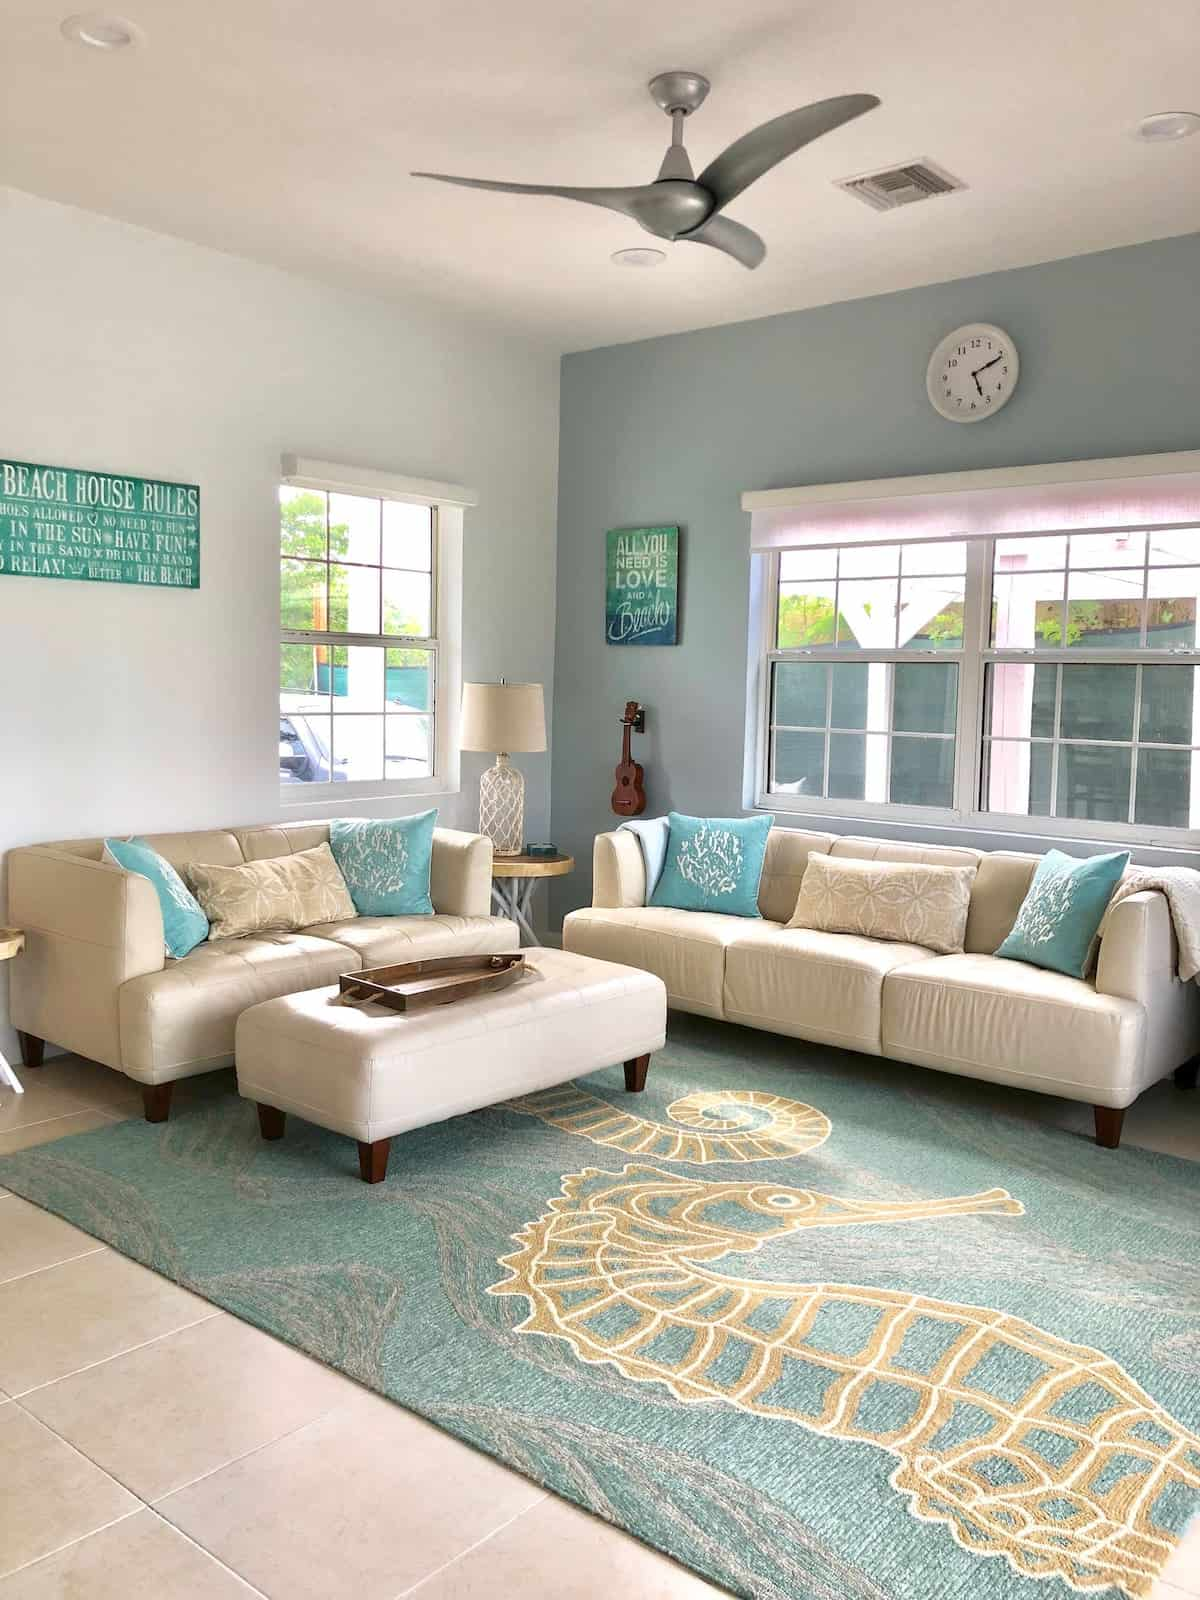 Image of Airbnb rental in Grand Cayman, Cayman Islands